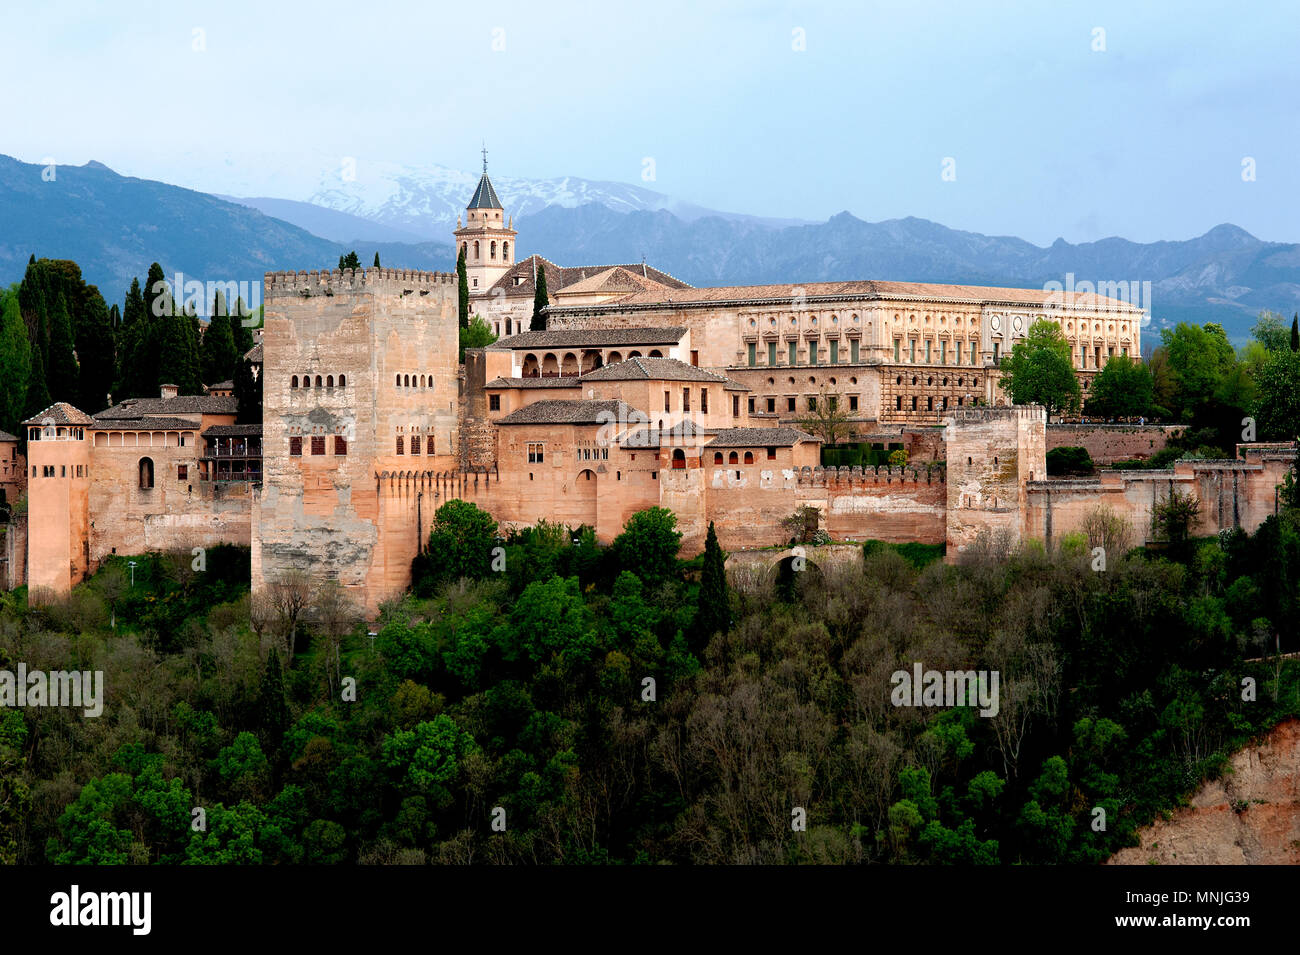 The Alhambra palace in the Spanish city of Granada was built by the Moors in an imposing Islamic style of architecture and is a world heritage site. - Stock Image